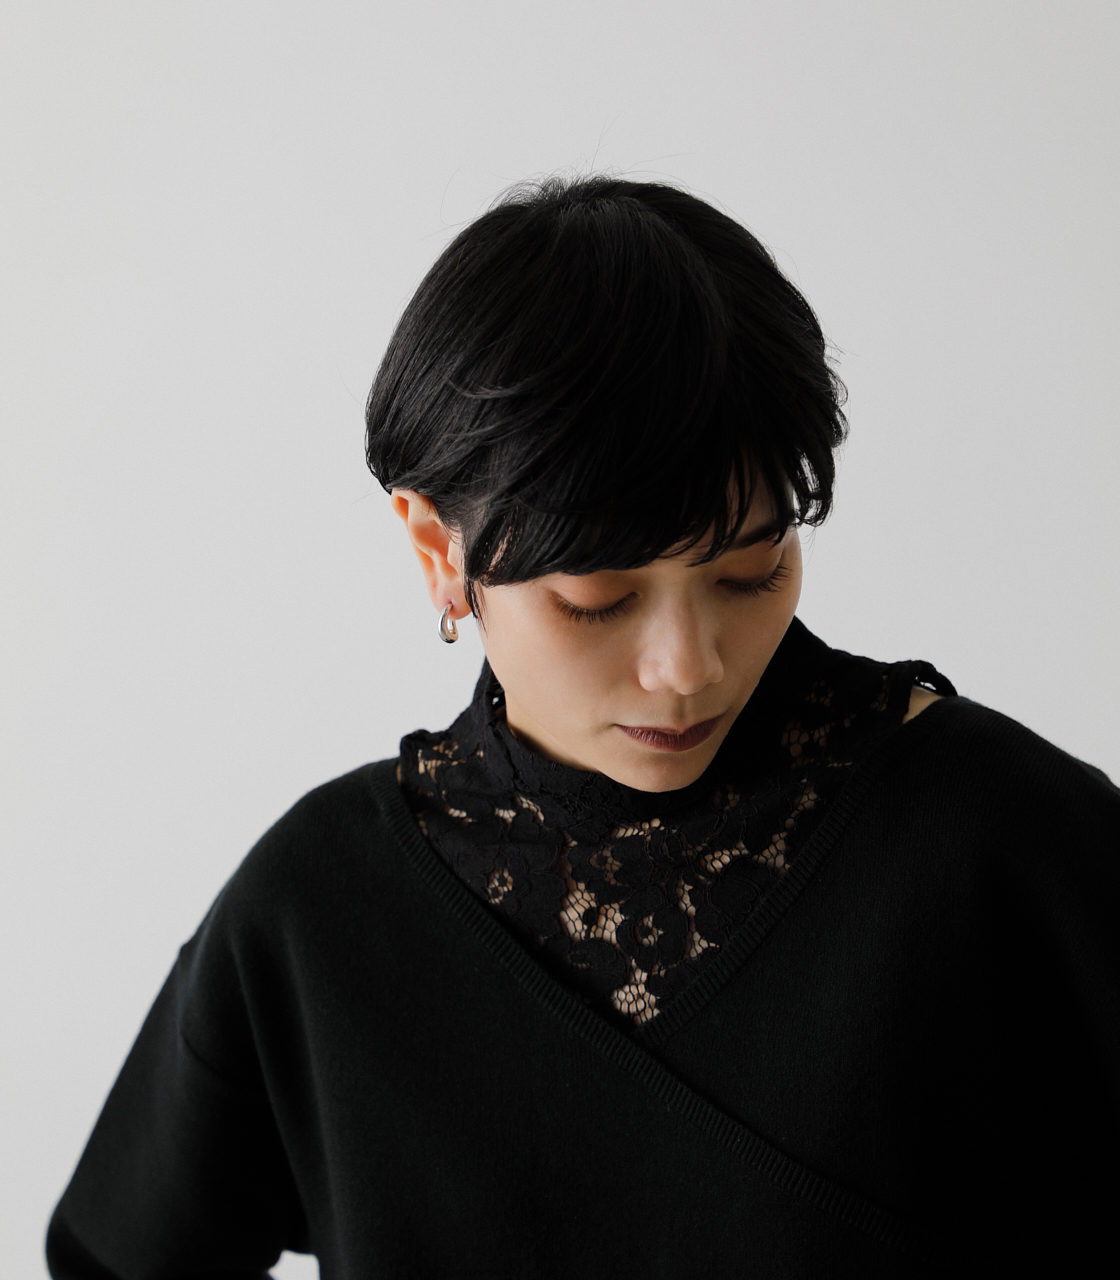 LACE DOCKING CACHE-COEUR TOPS/レースドッキングカシュクールトップス 詳細画像 BLK 3